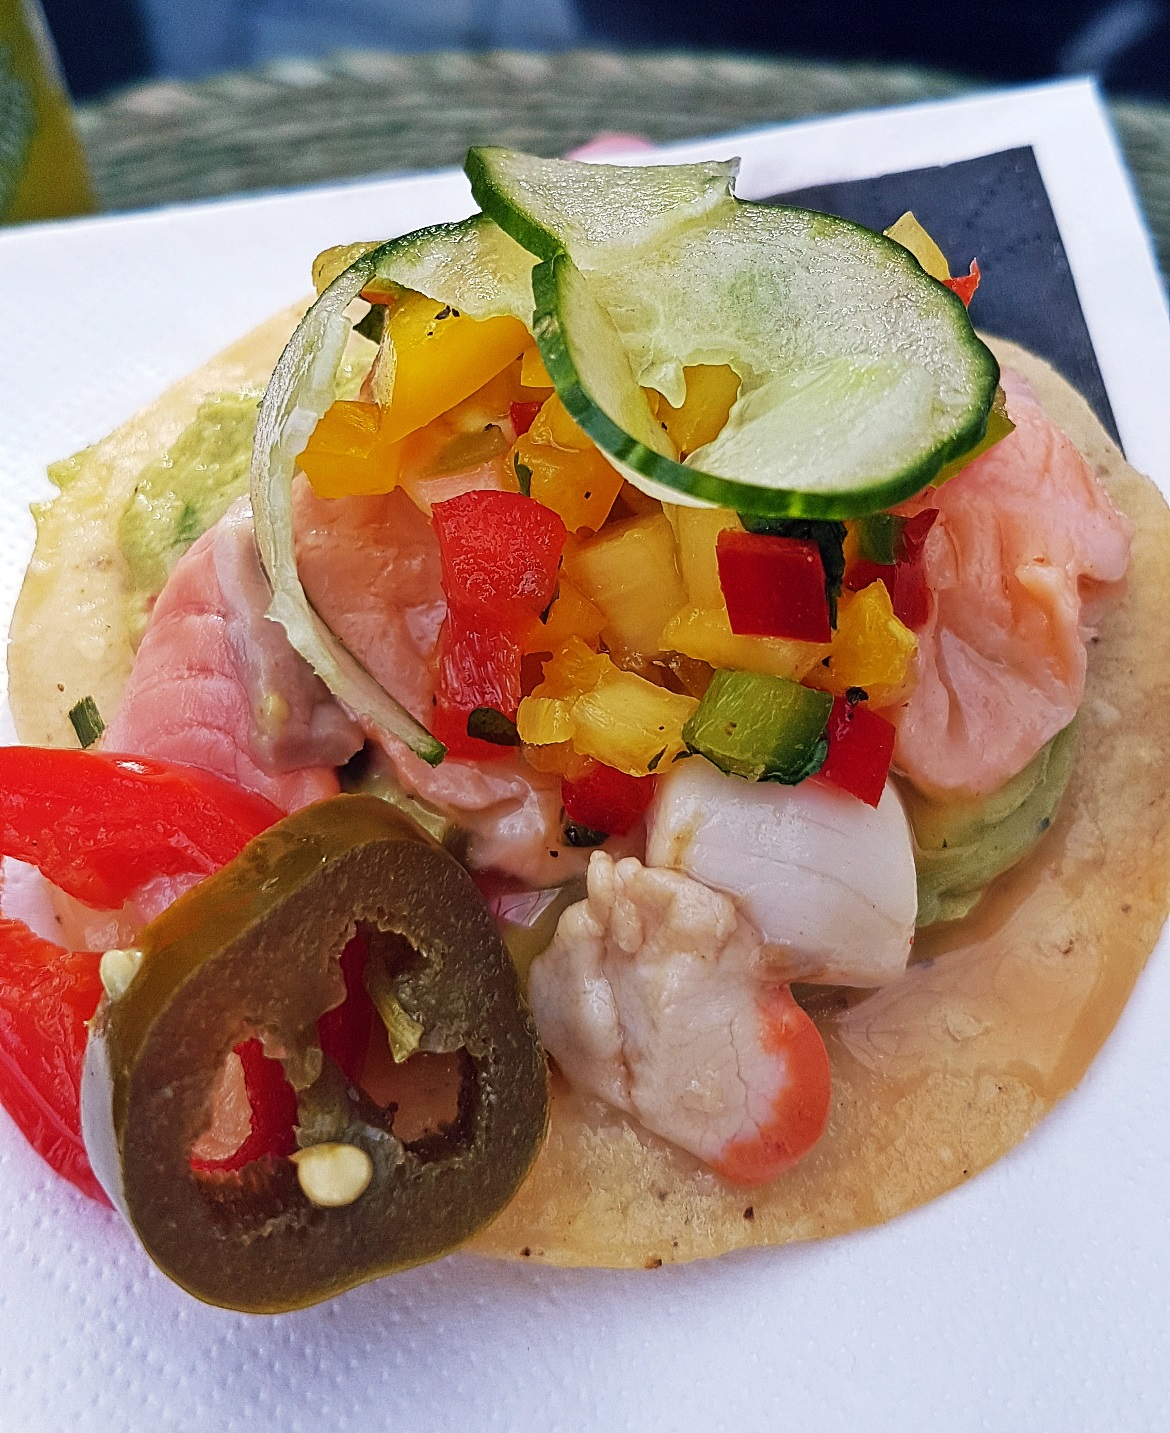 Ceviche Tostada - Cielo Blanco Social Summers, review by BeckyBecky Blogs